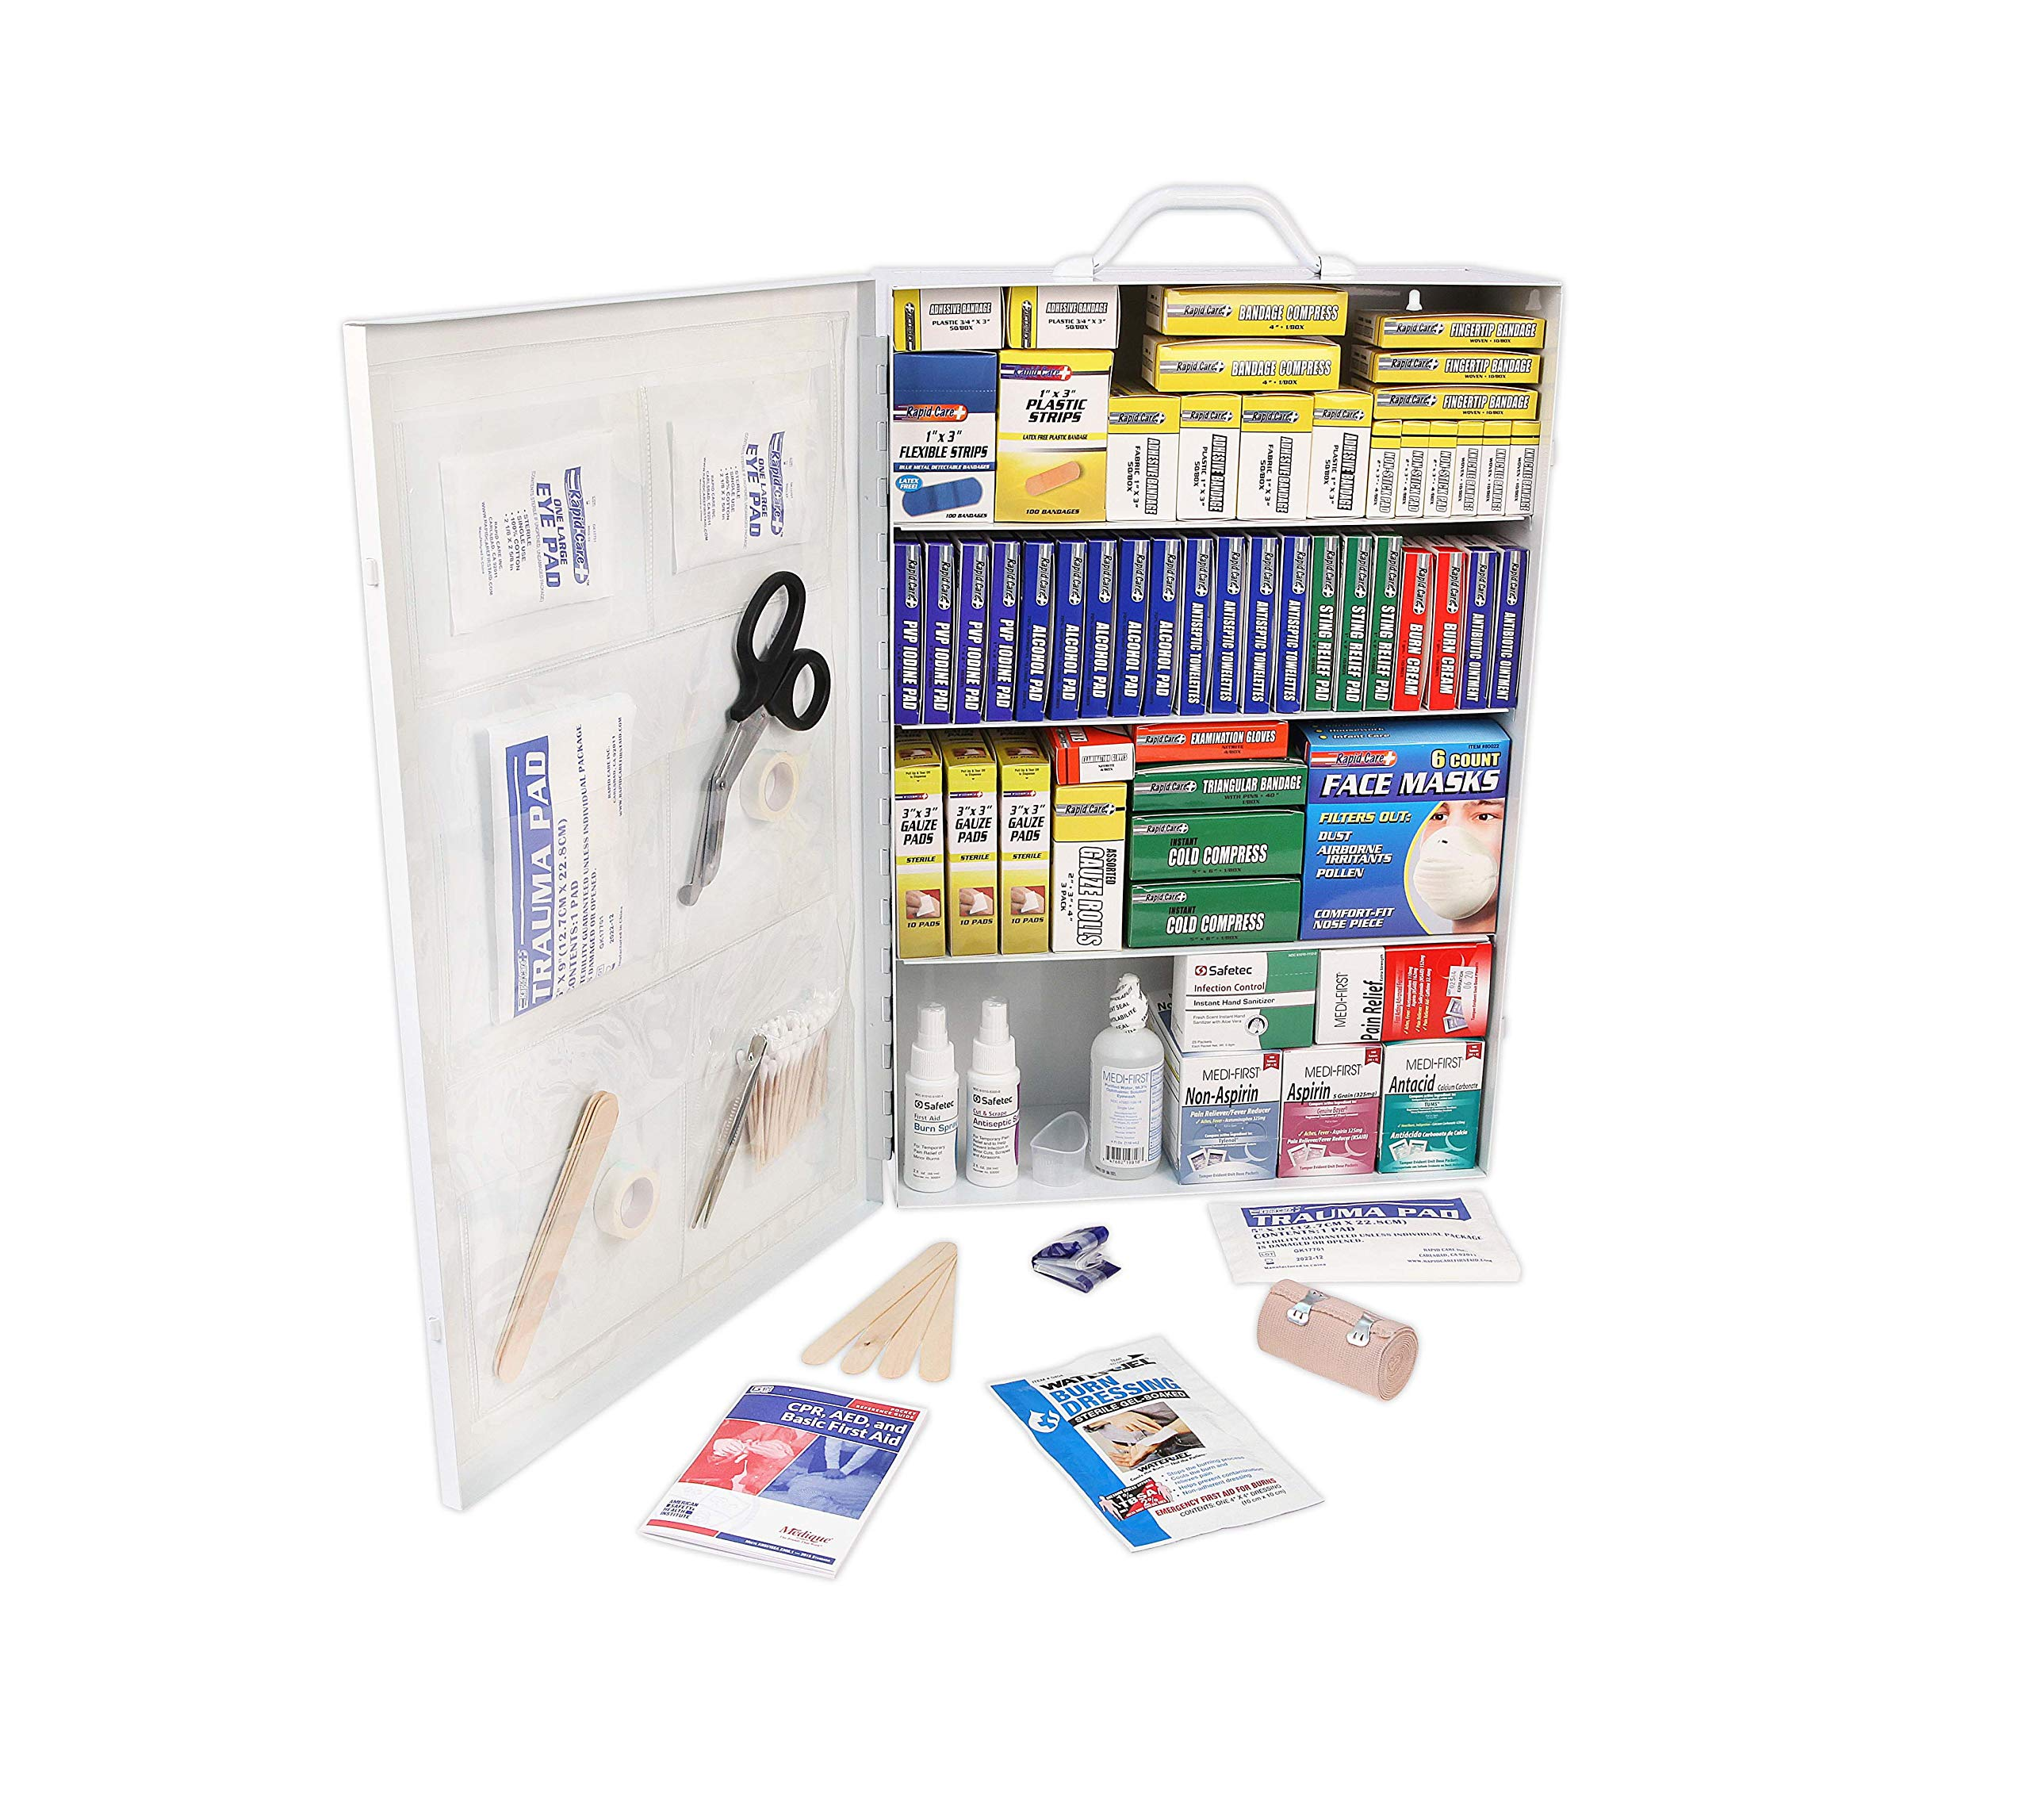 Rapid Care First Aid 80099 4 Shelf All Purpose First Aid Kit Cabinet, Class A+, Exceeds OSHA/ANSI Z308.1 2015, Wall Mountable, Over 1,500 Pieces